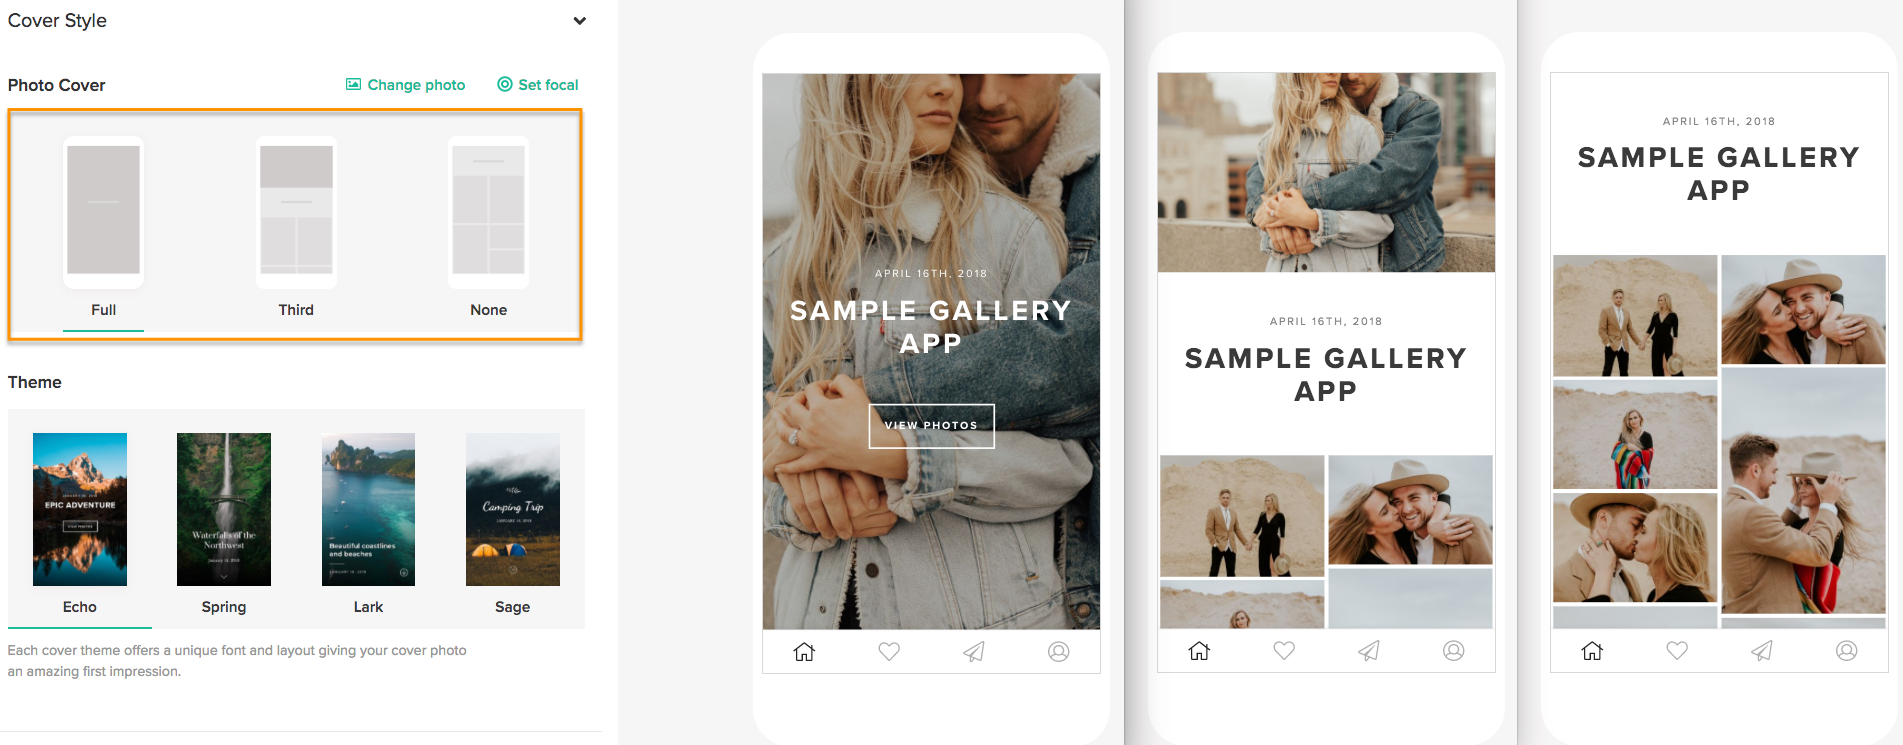 what are my customization options for a mobile gallery app